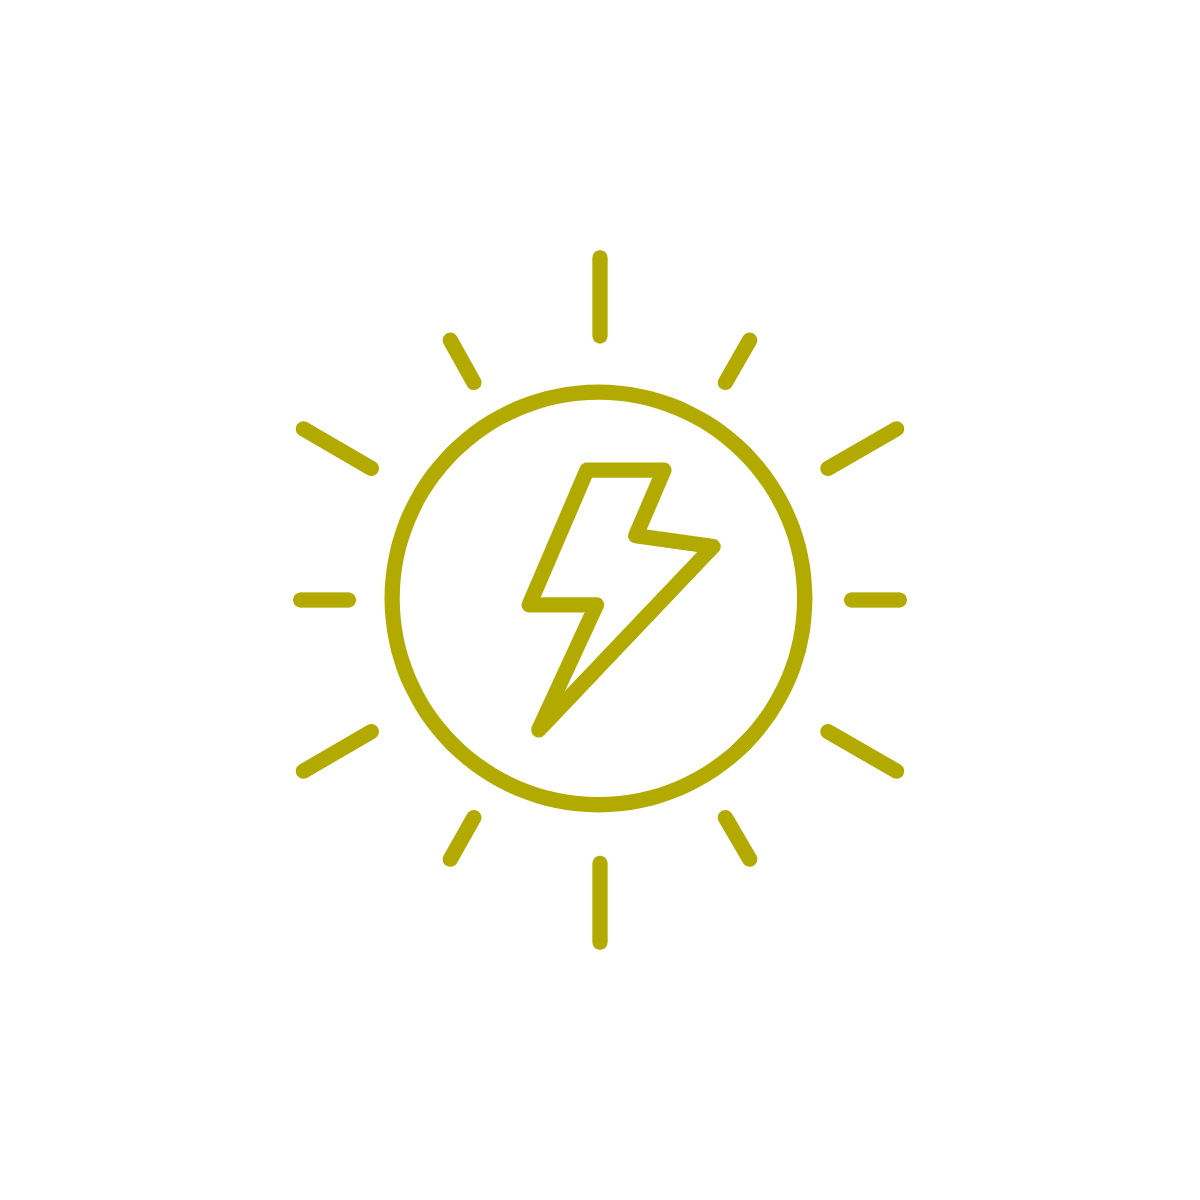 line drawing of a sun with a lightning bolt in the centre